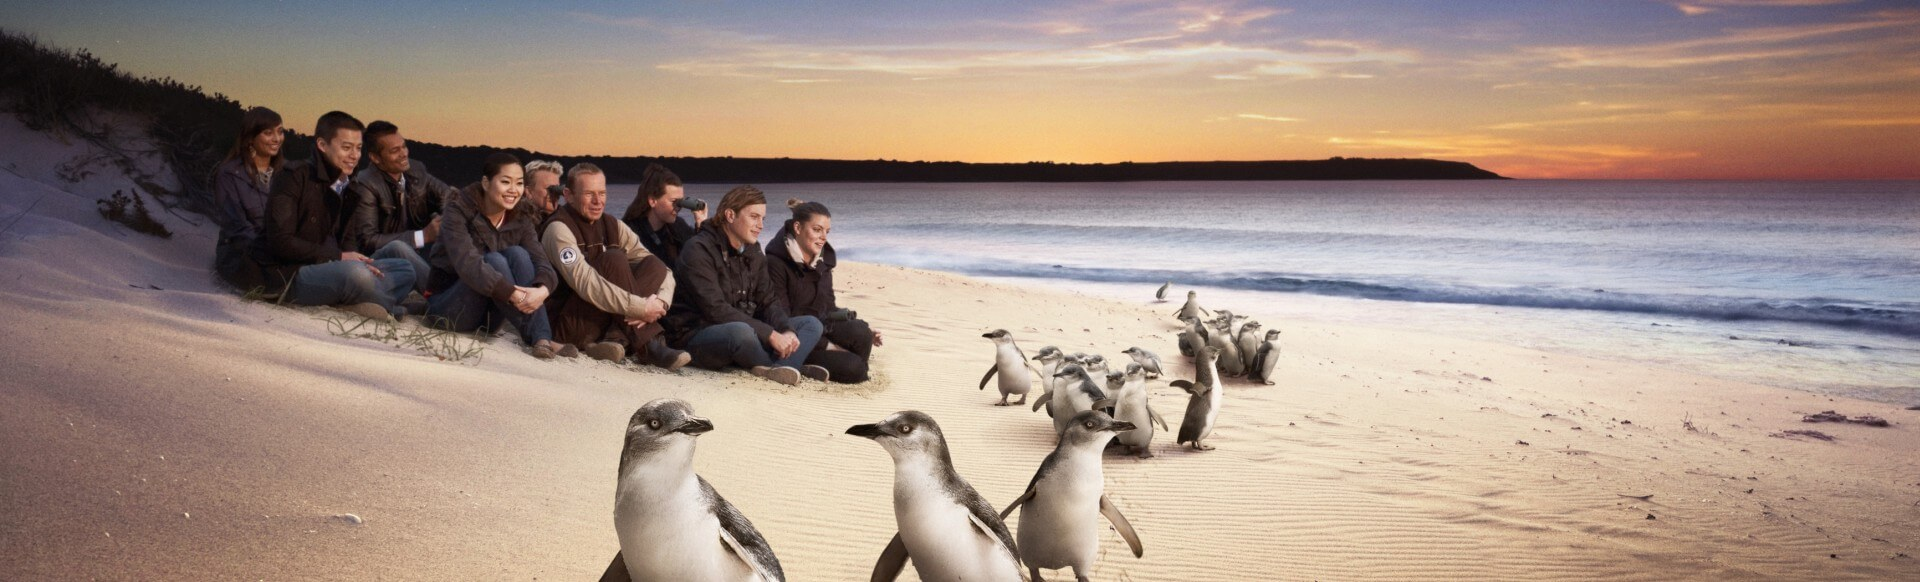 Melbourne Private Tours Philip Island Trip to Penguin Parade